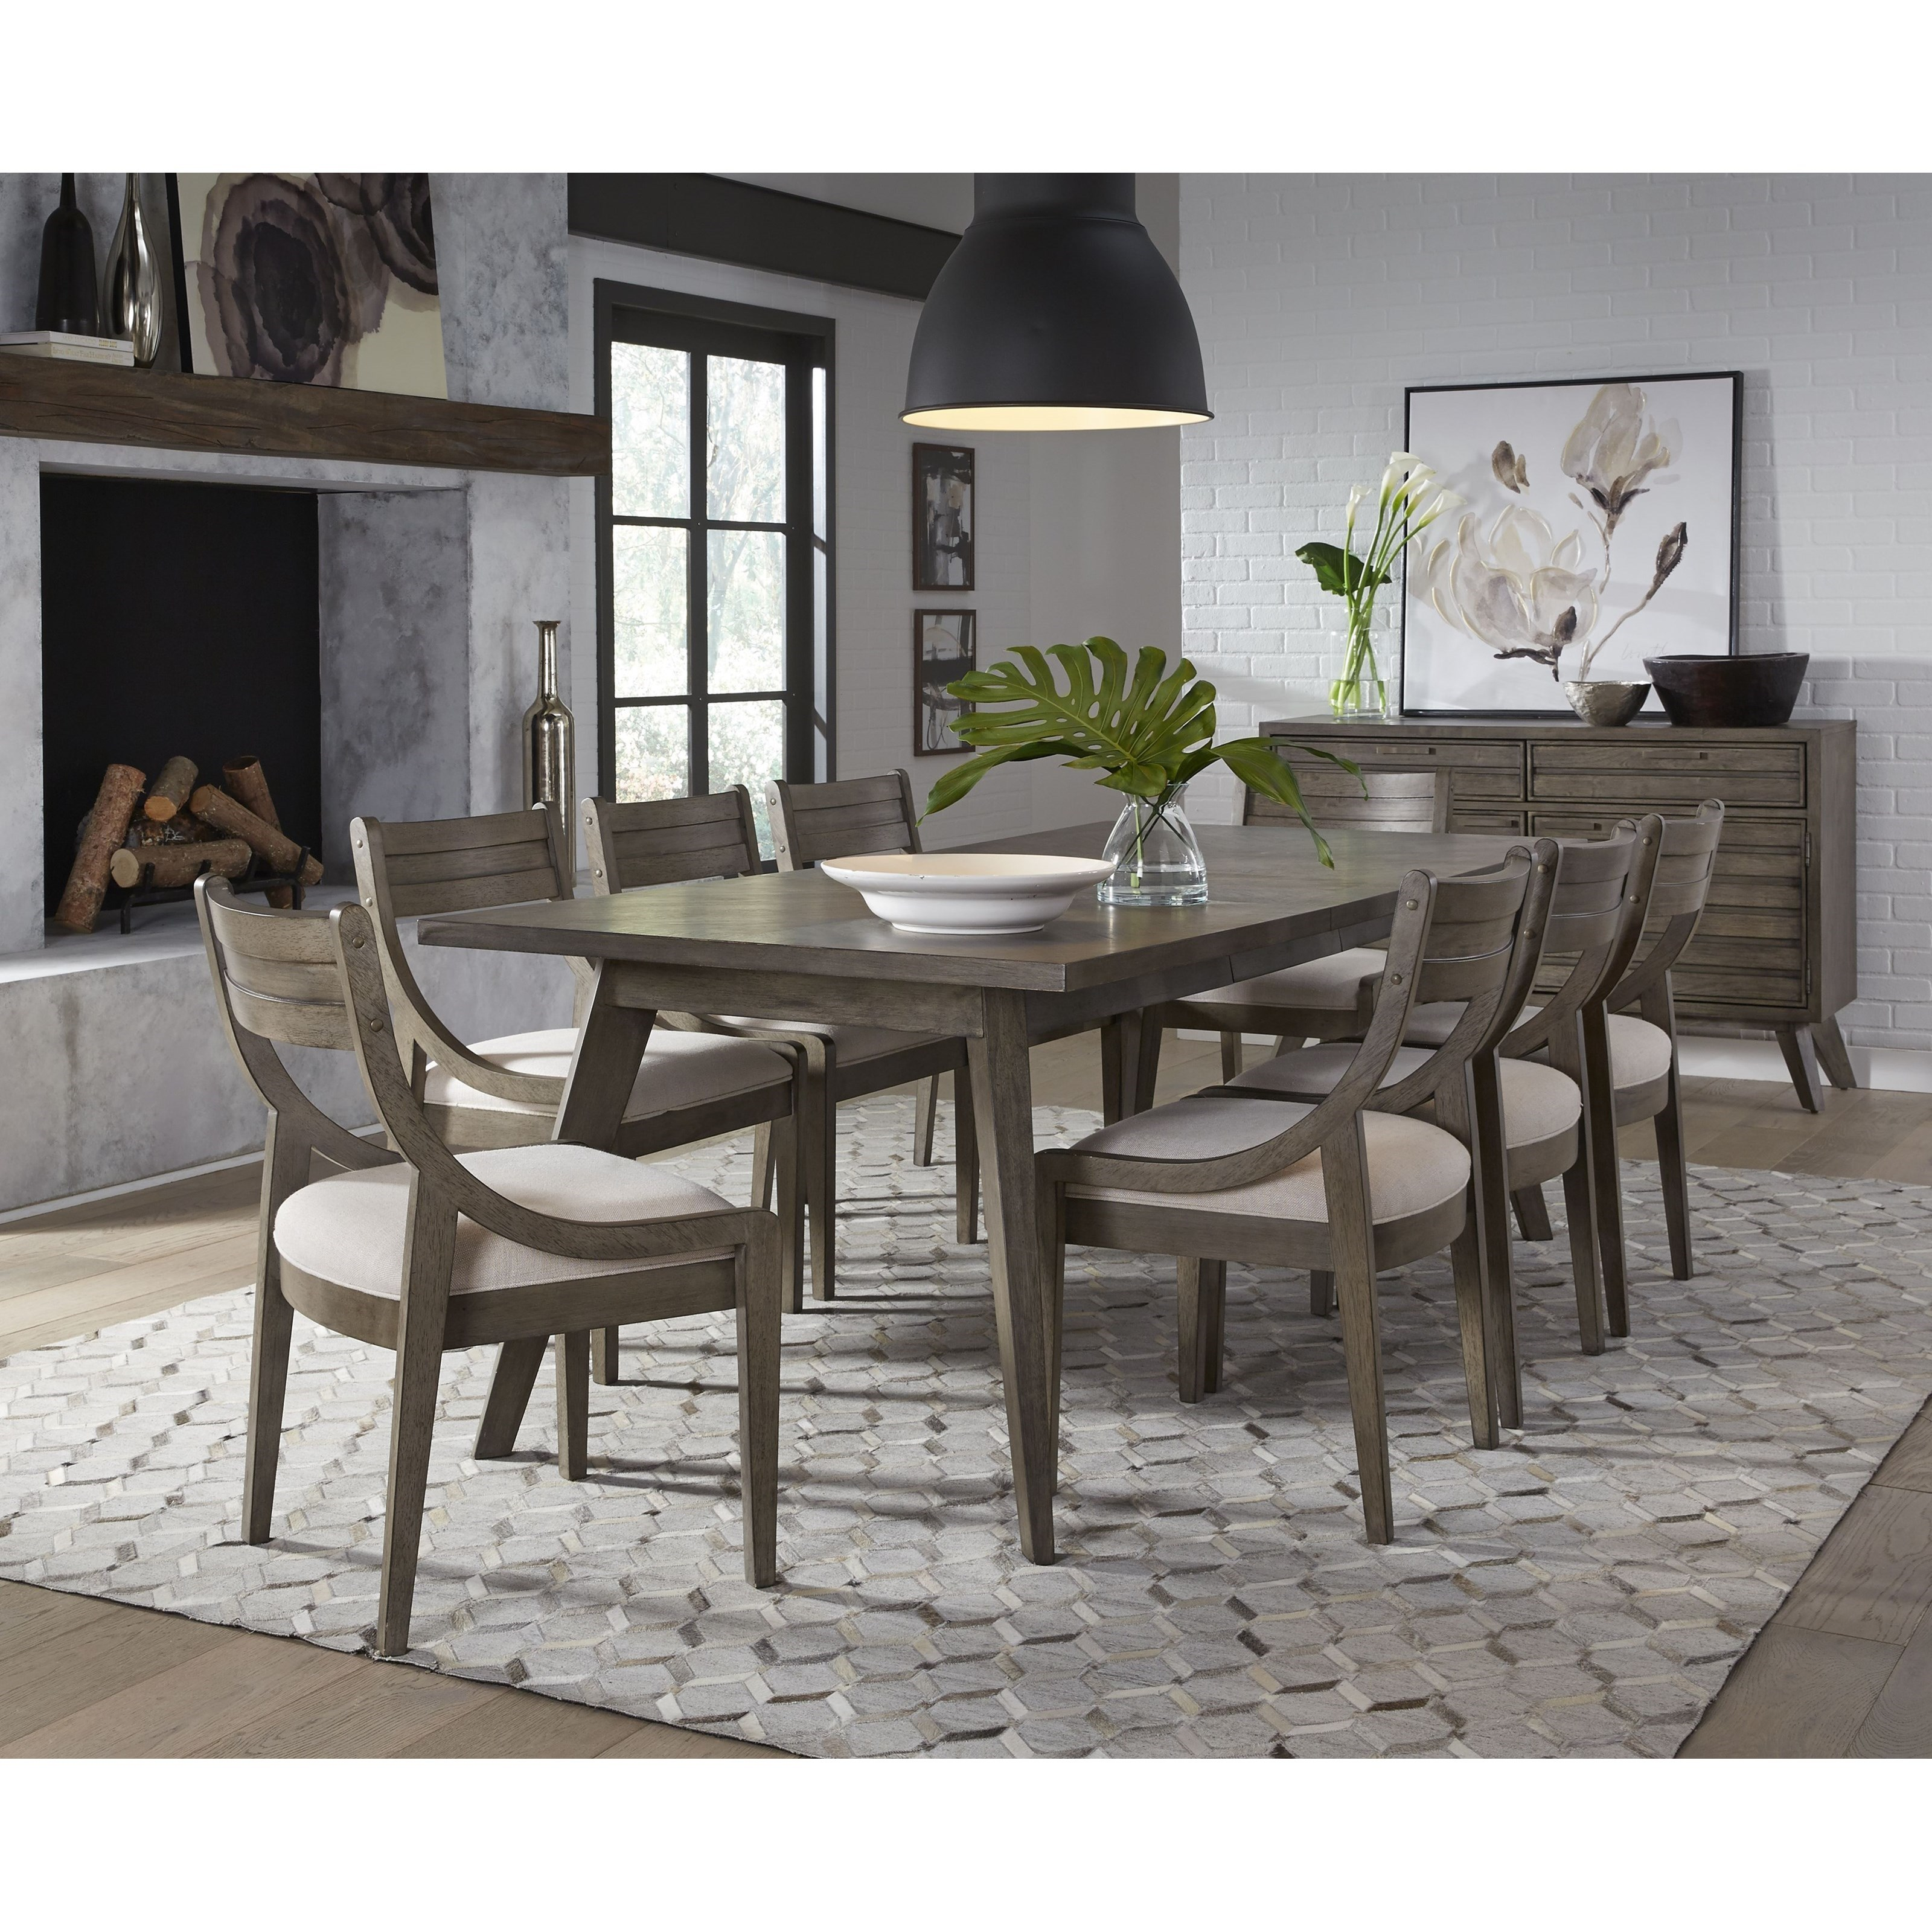 Greystone Formal Dining Room Group by Legacy Classic at Stoney Creek Furniture